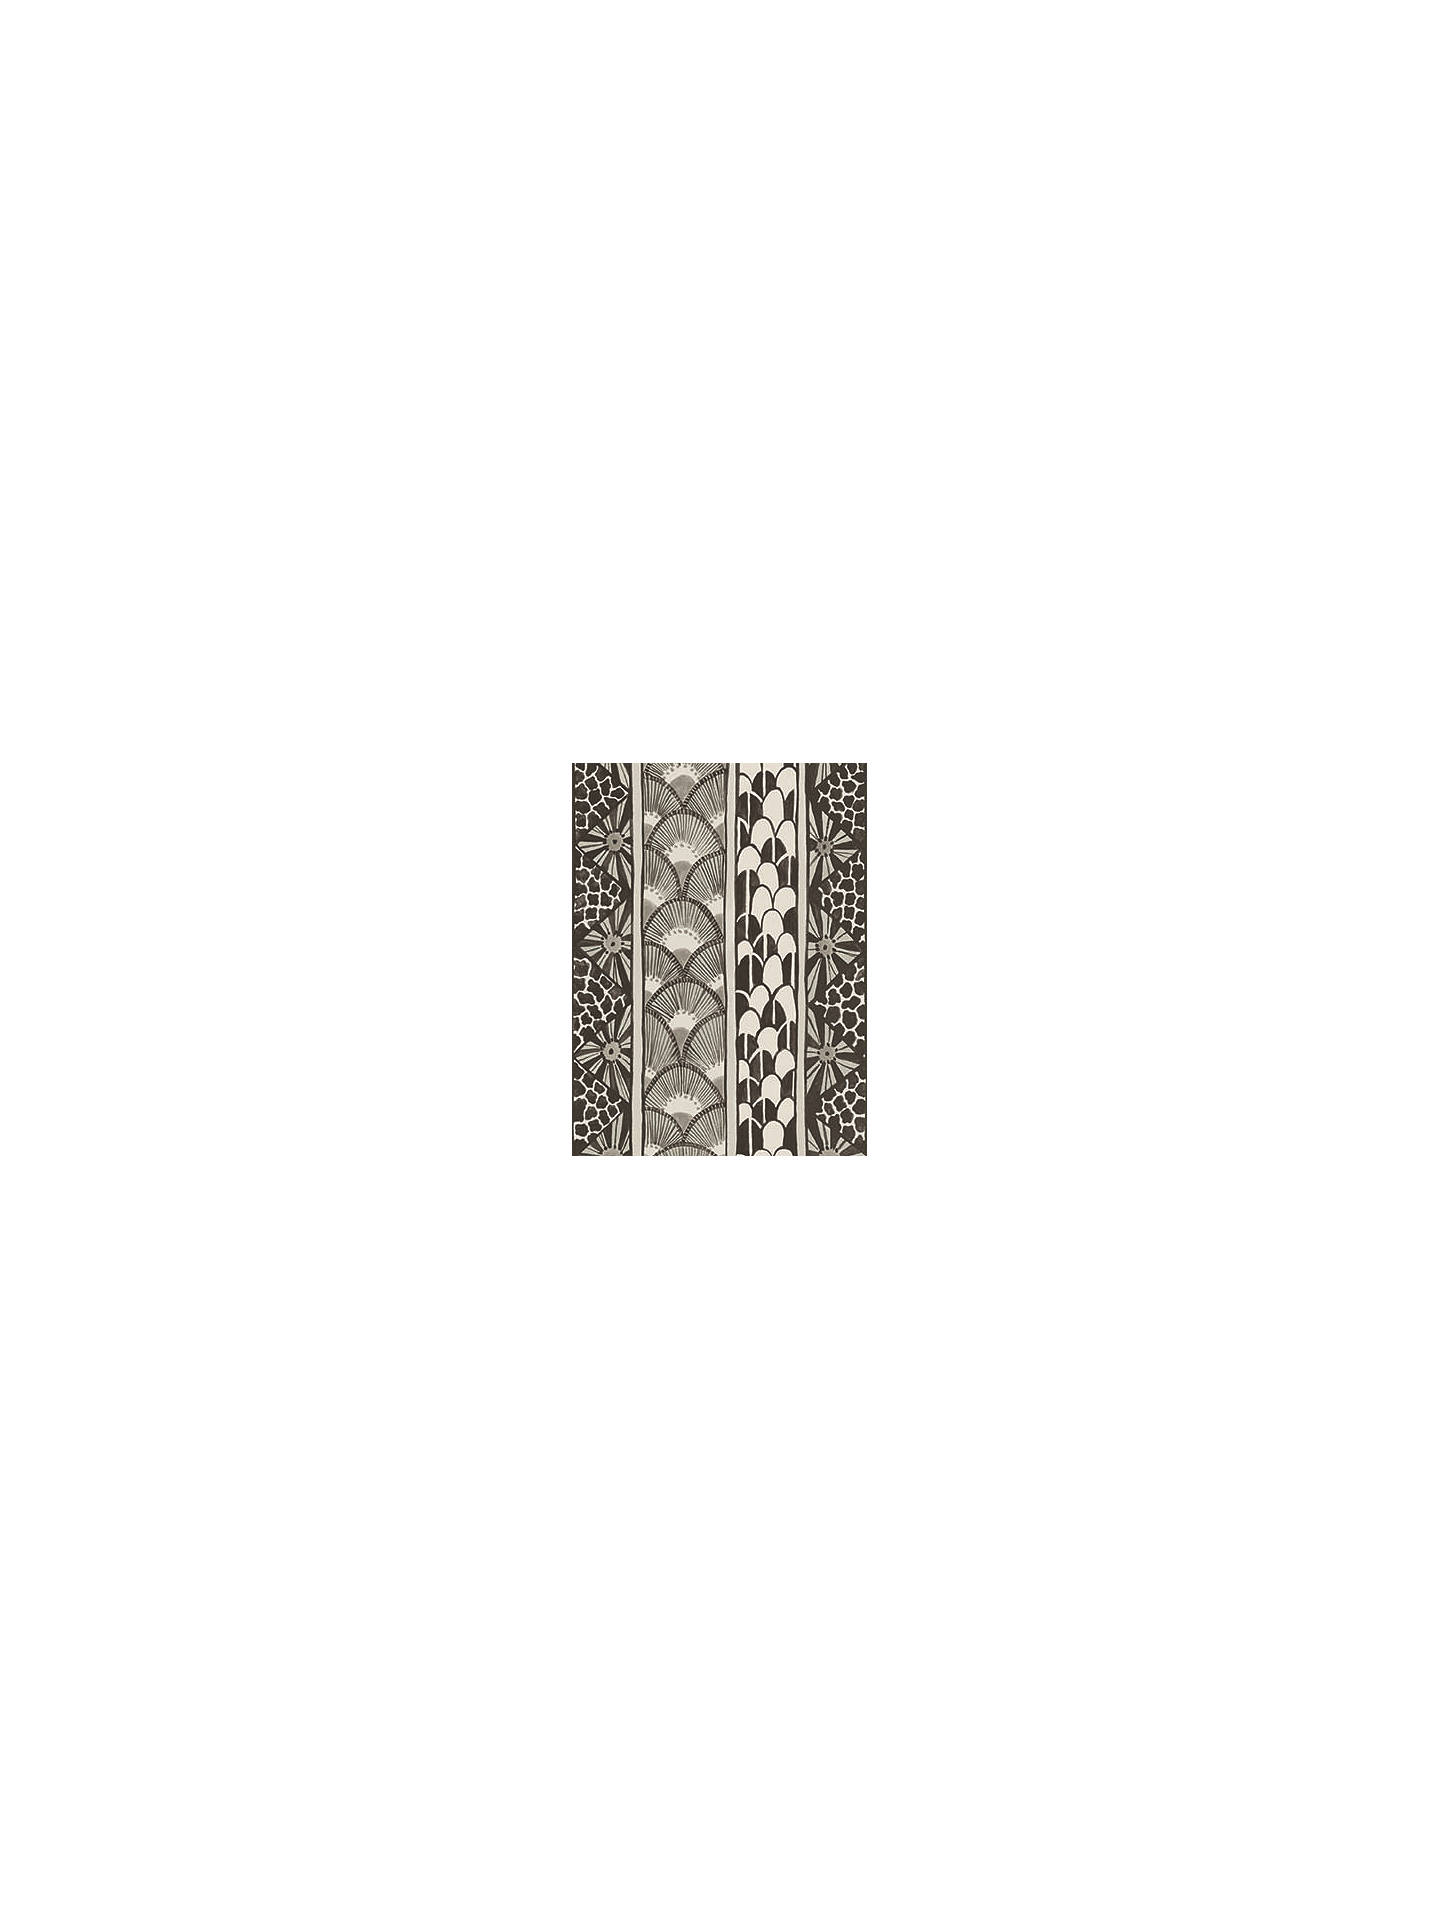 Buy Cole & Son Ardmore Wallpaper Border, 109/5025 Online at johnlewis.com